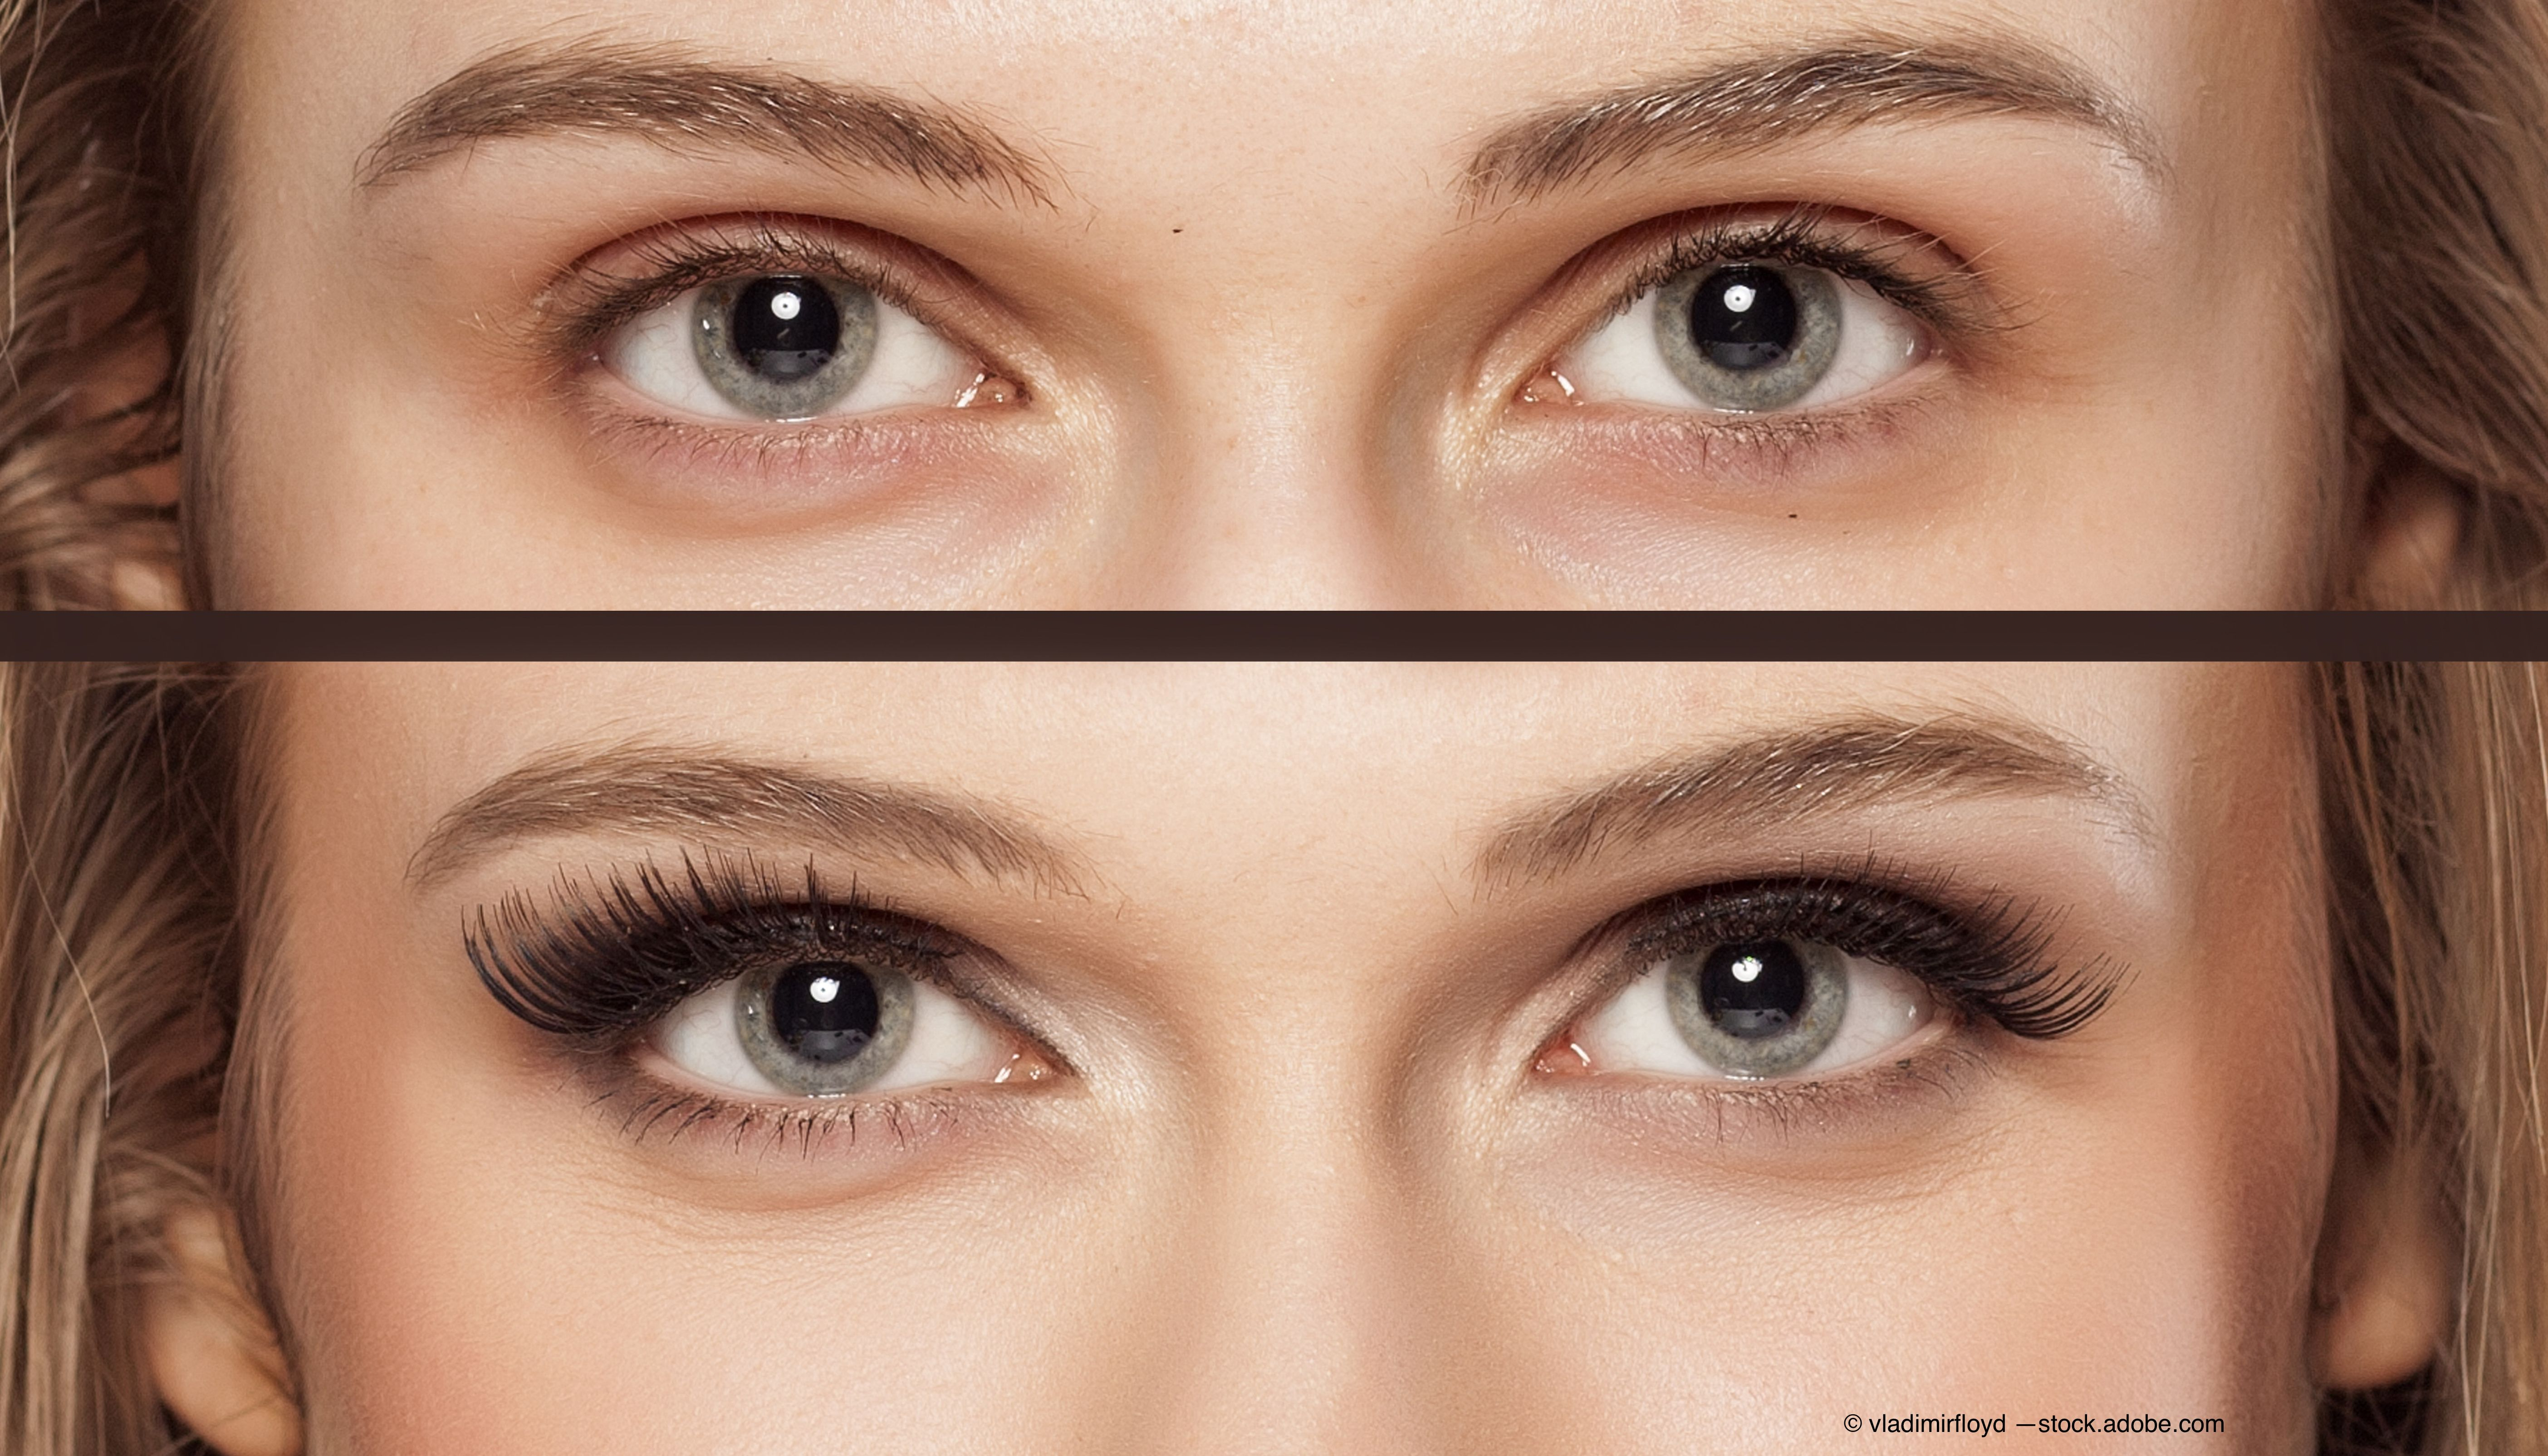 How to educate patients on risks of eyelash enhancements